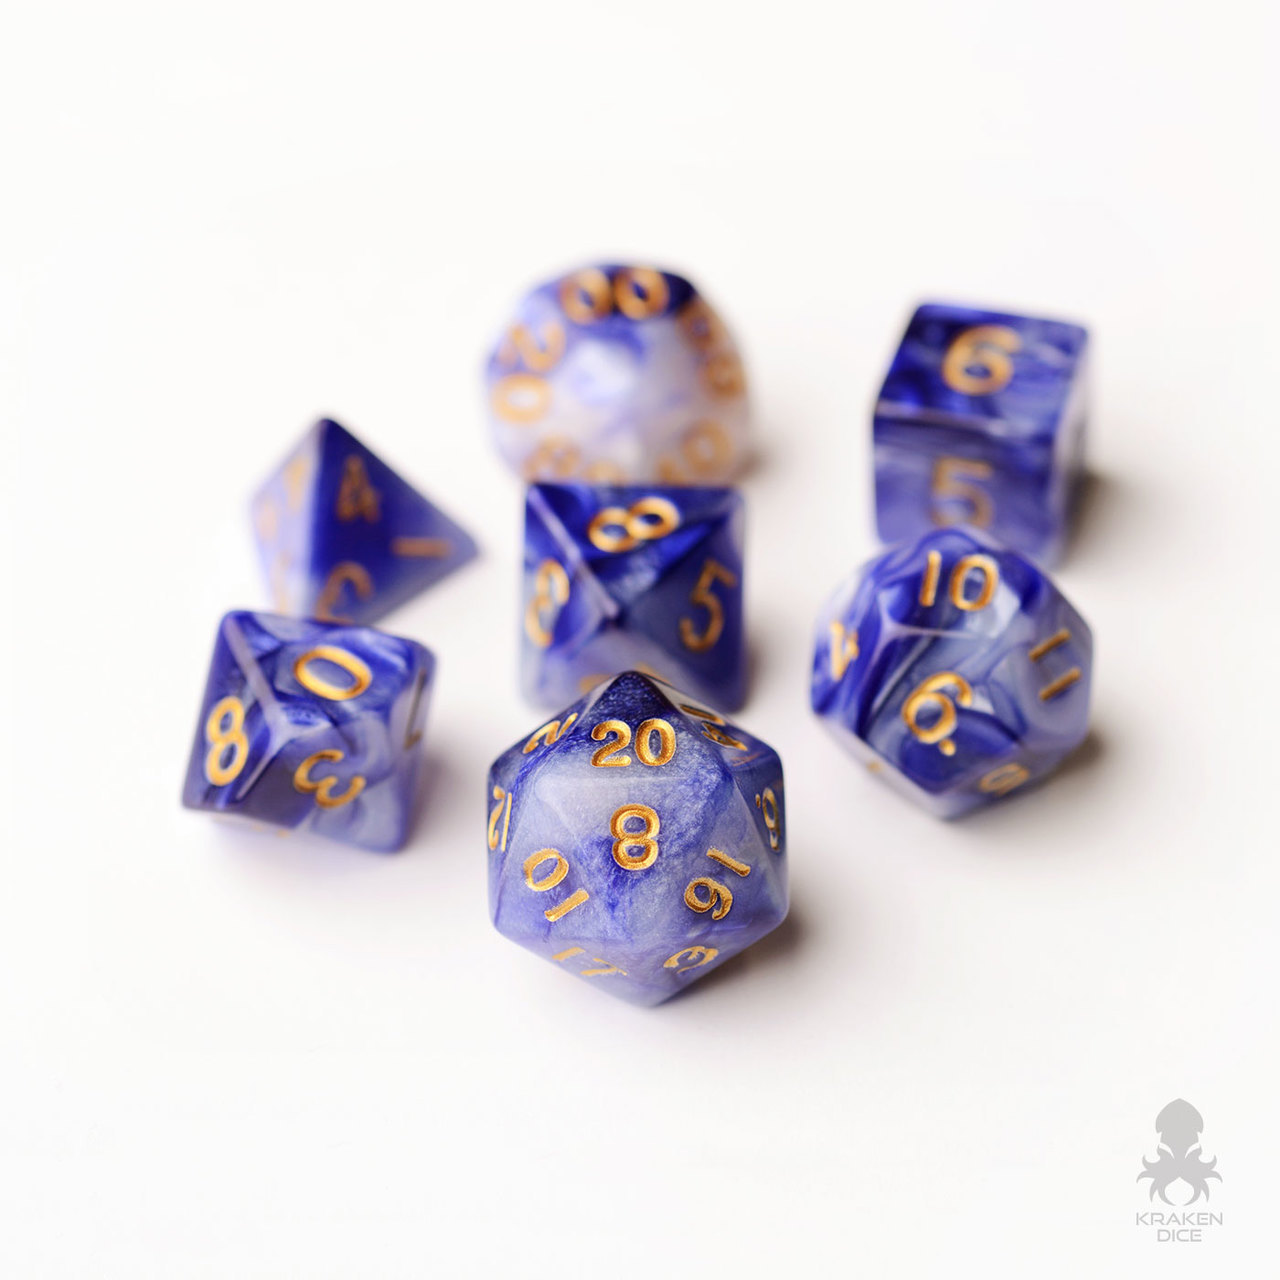 KD0013a-Dungeons-and-Dragons-Polyhedral-Dice-Set-Blue-Violet__70418.1503528684